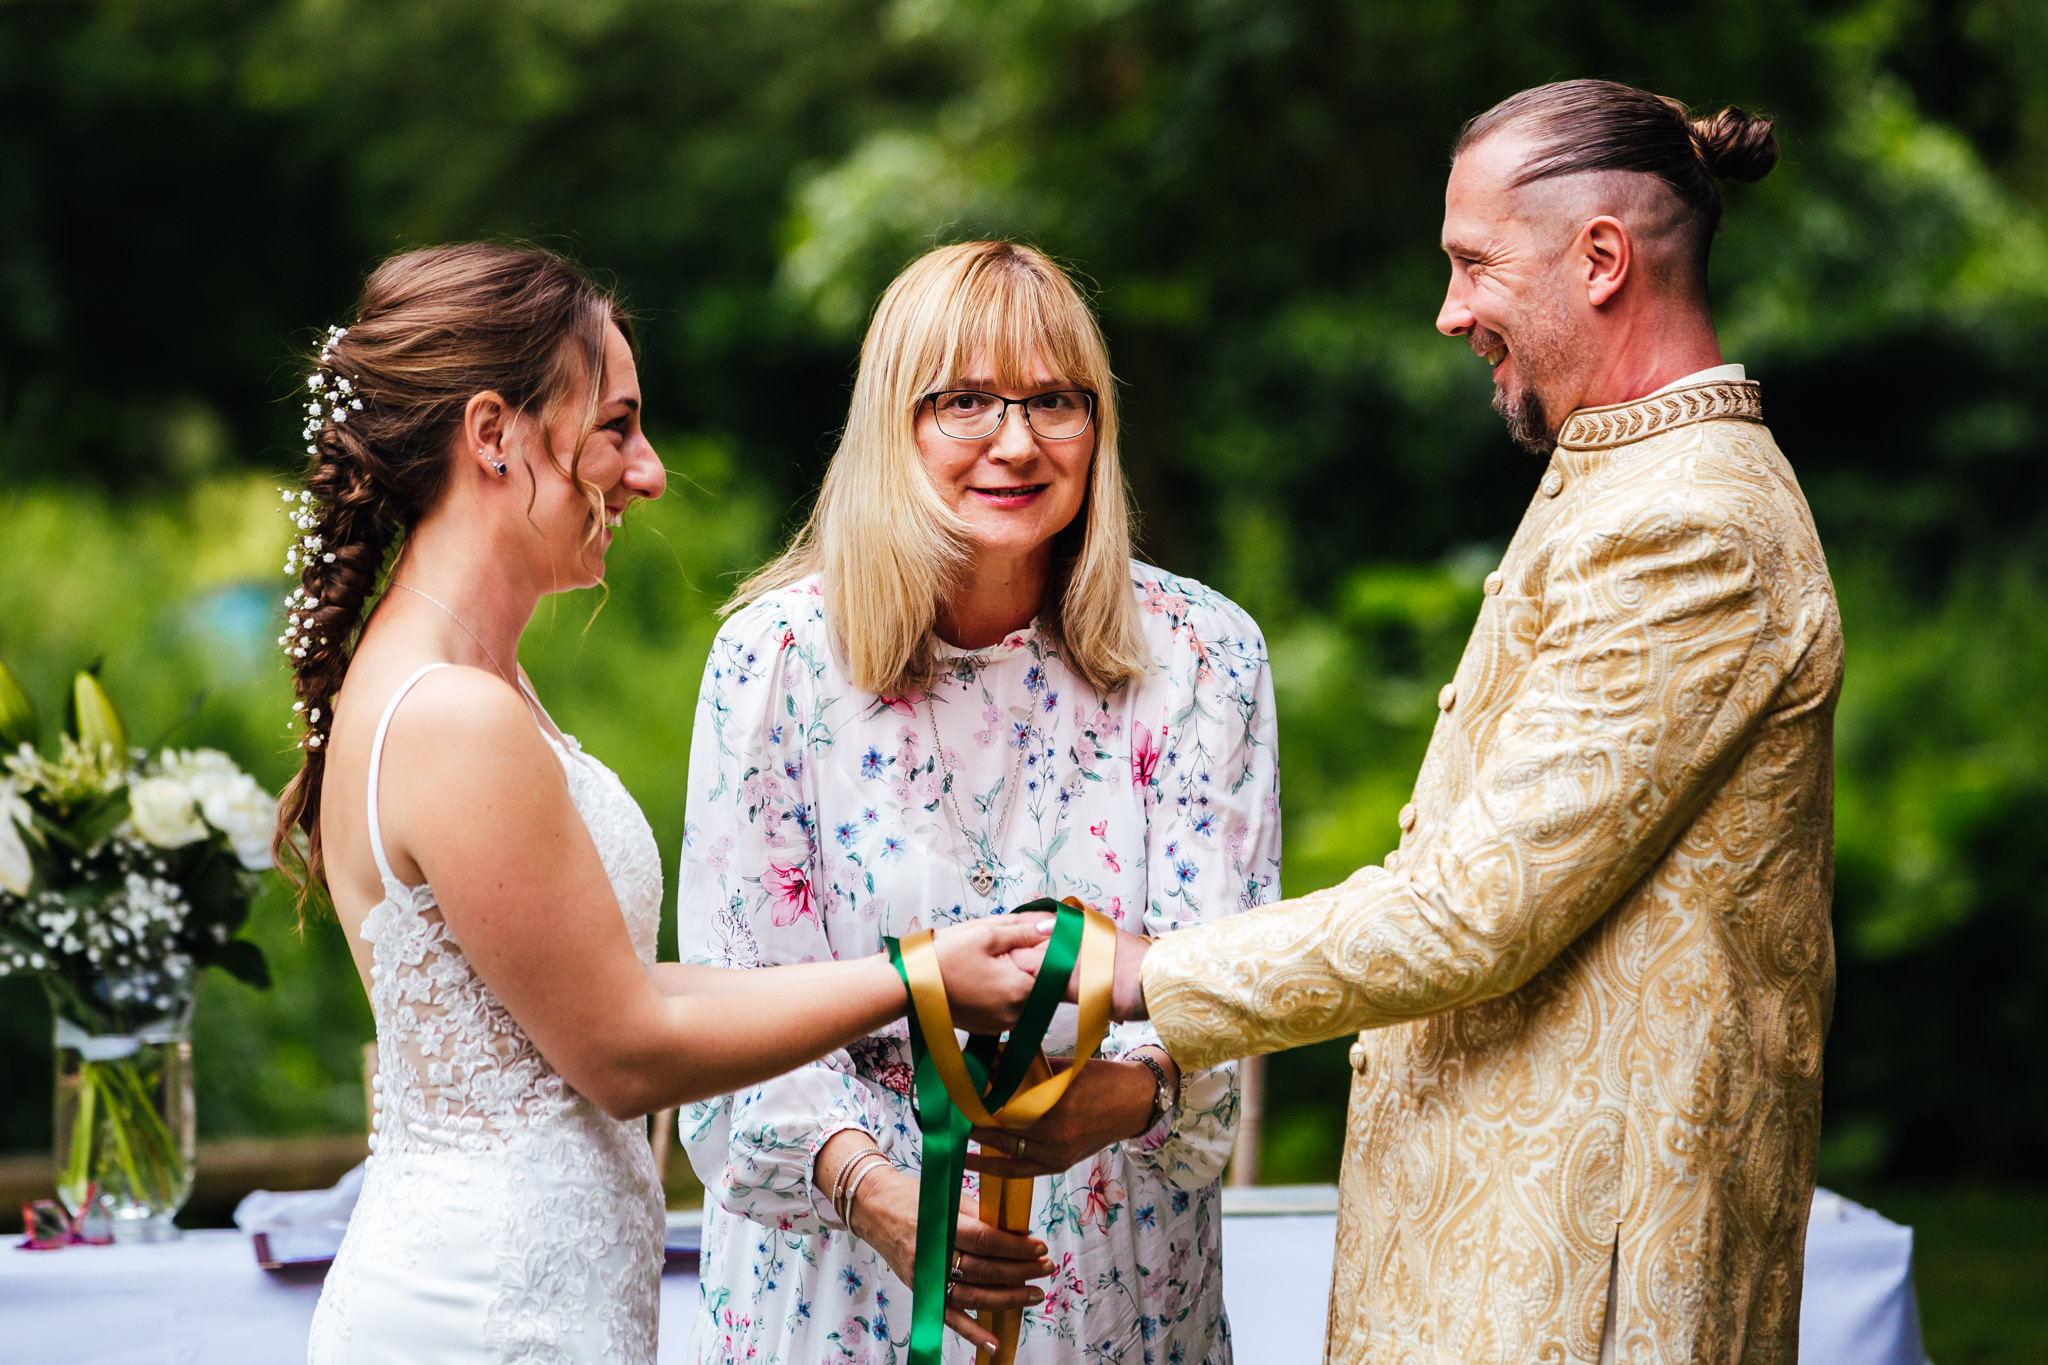 Wedding Celebrants - hand fasting ceremony being carried out at real wedding by celebrant